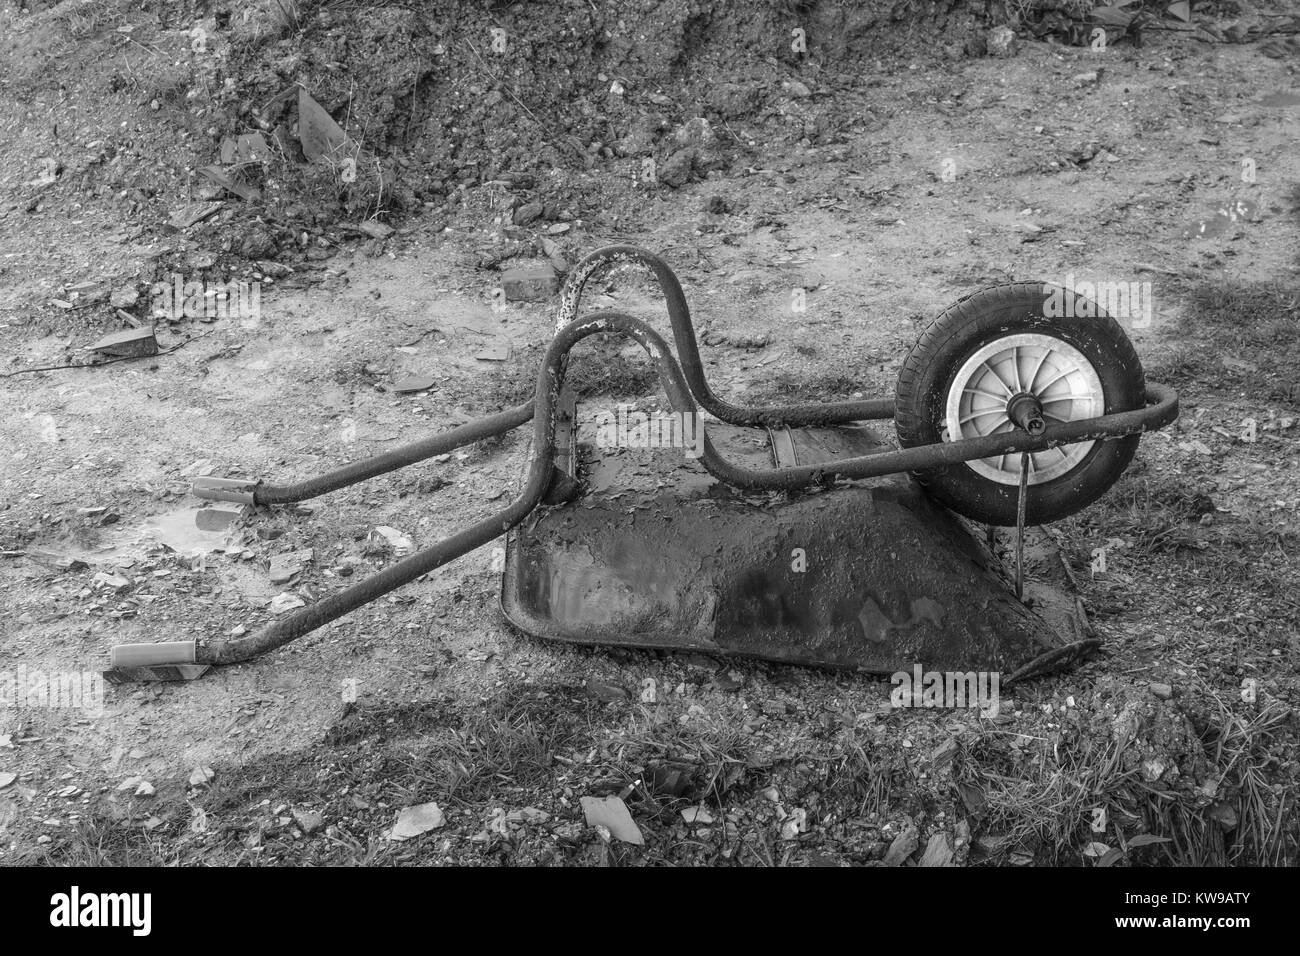 Black and white image (colour conversion) of turned wheelbarrow on small construction site - metaphor for downturn - Stock Image